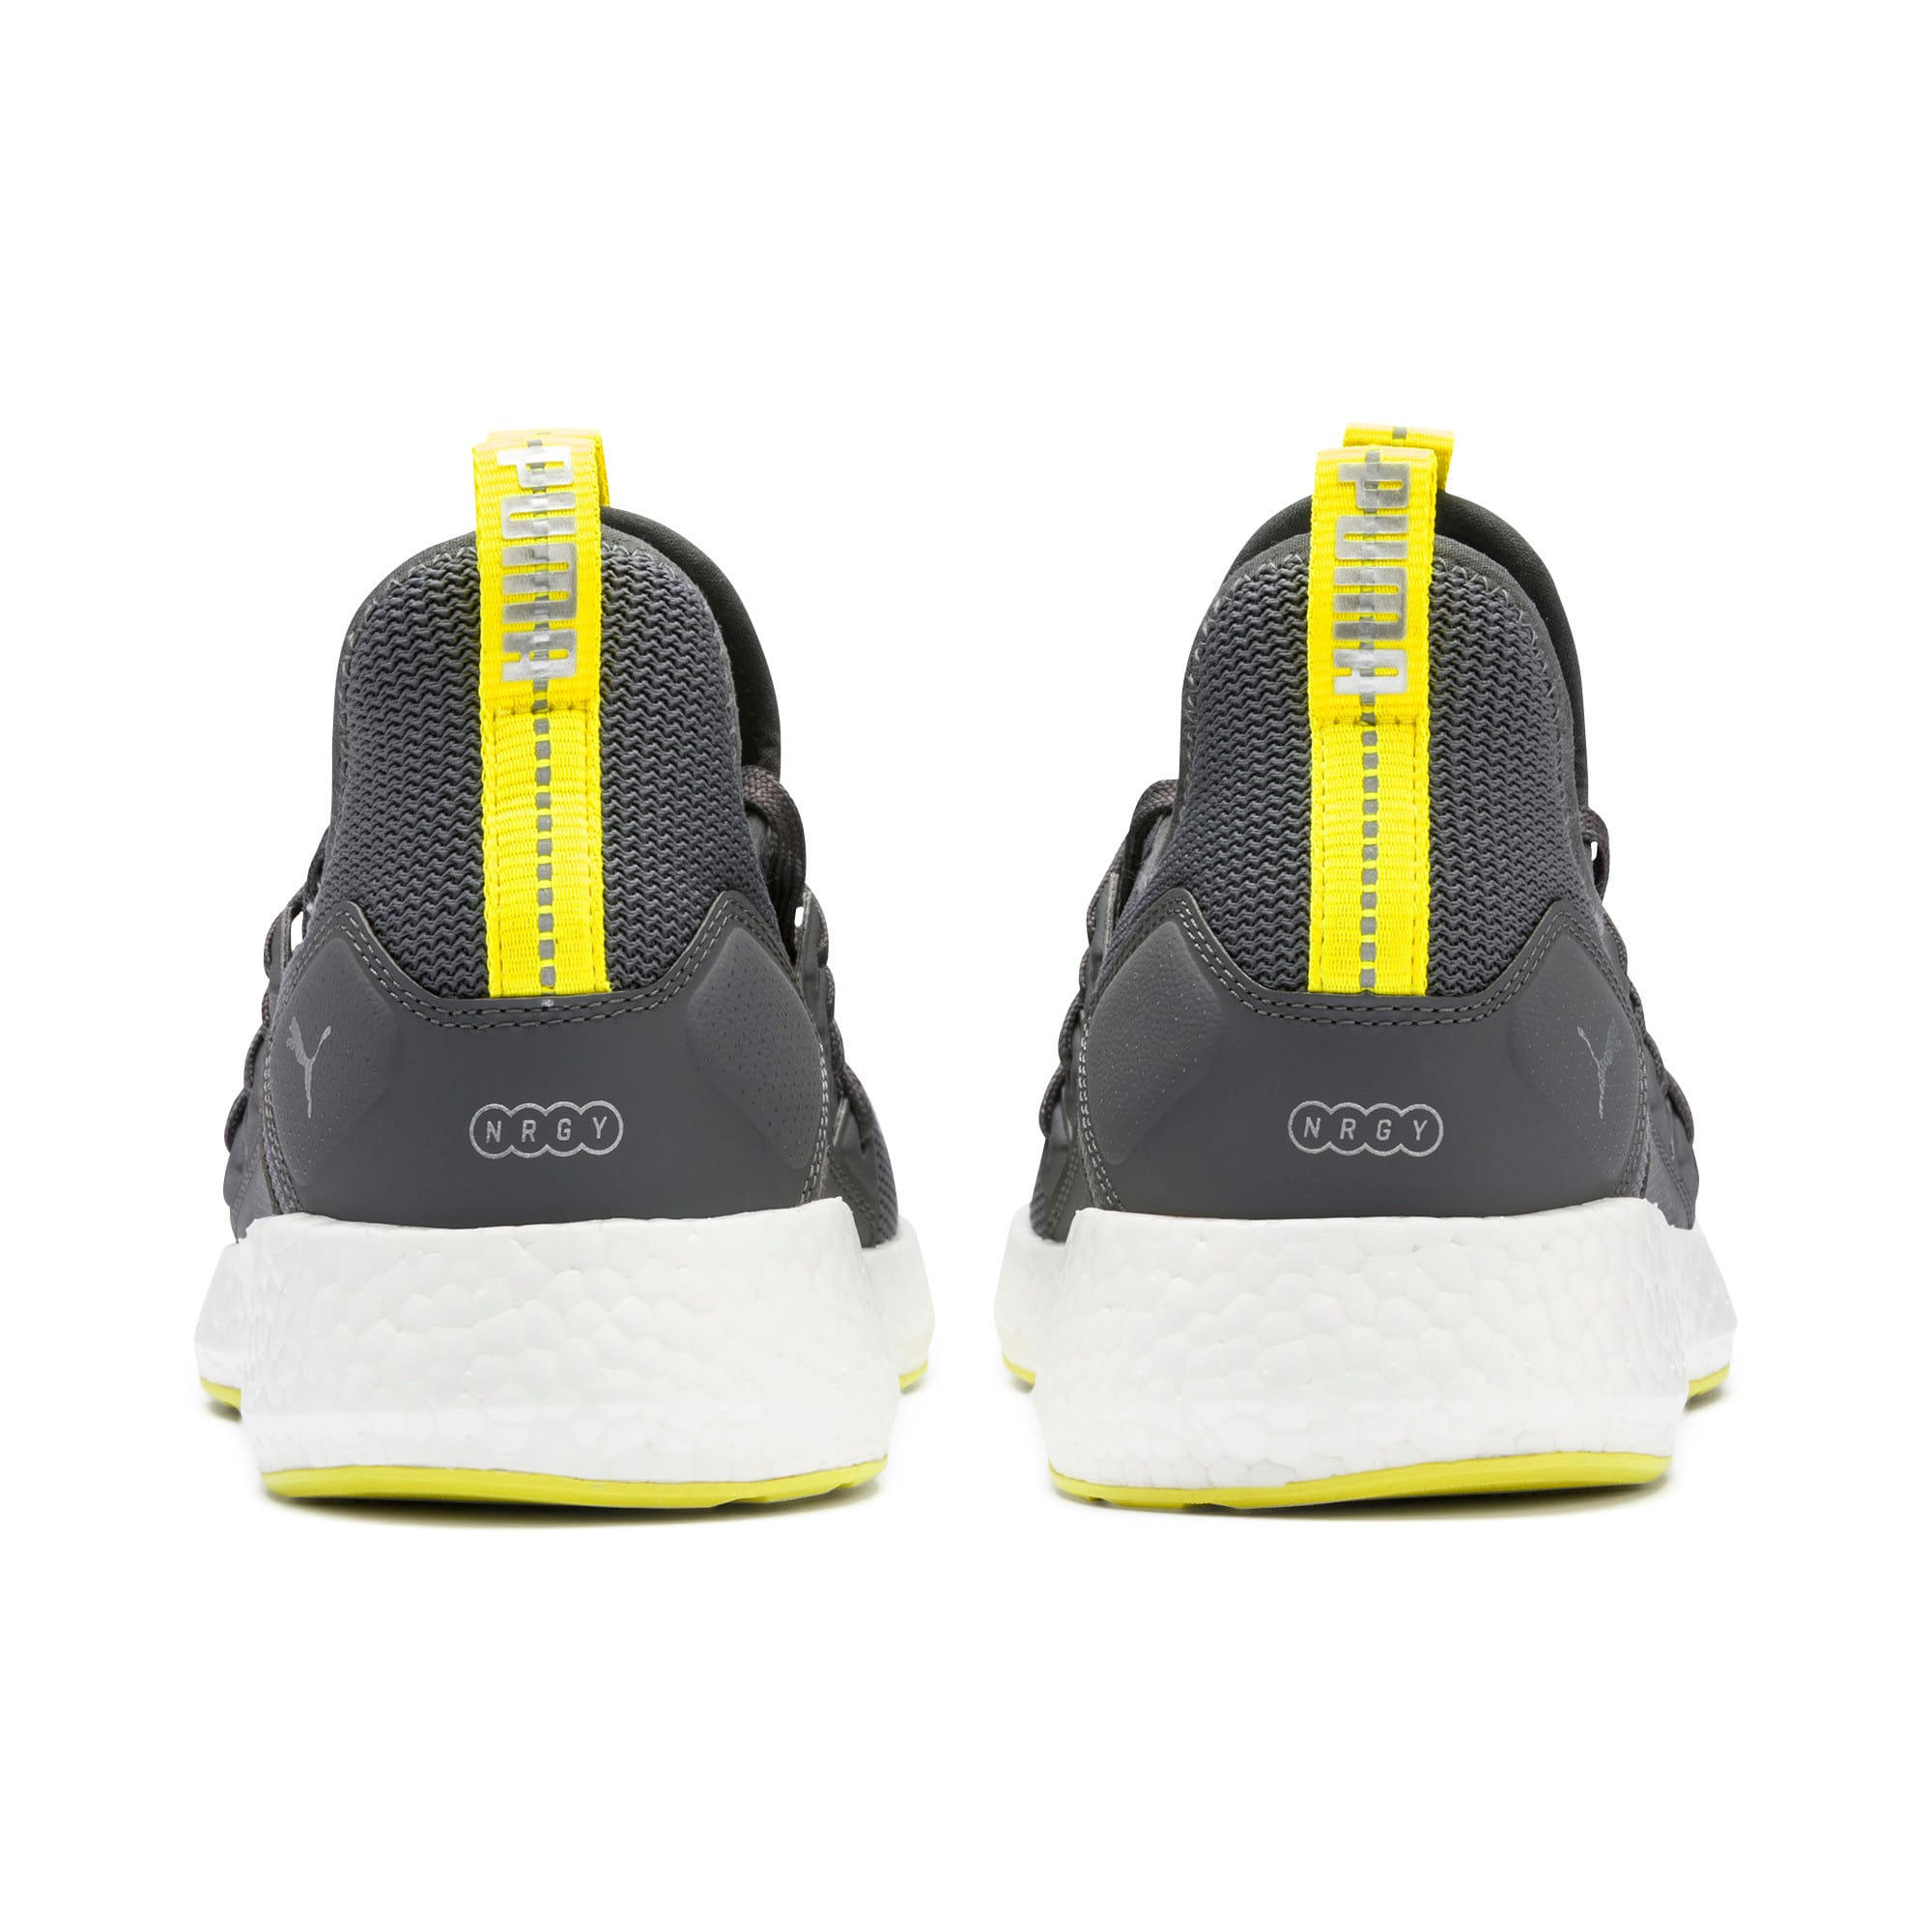 Thumbnail 4 of NRGY Neko Lights hardloopschoenen voor heren, CASTLEROCK-Yellow Alert, medium